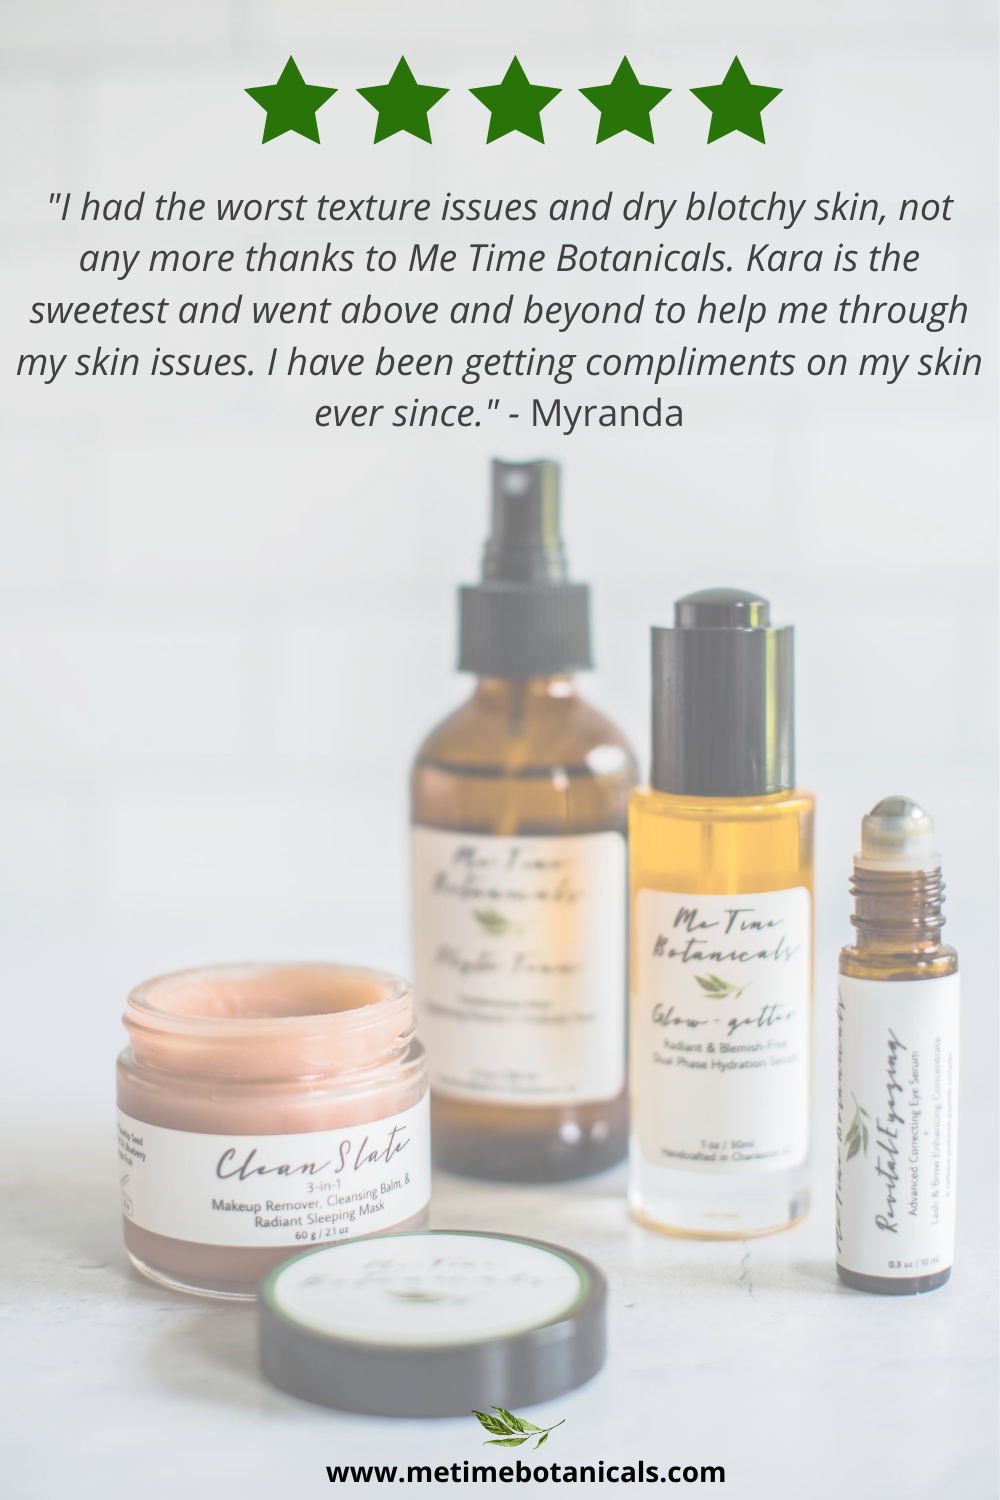 Creating a clean skincare routine for clear glowing skin is easier than you think with multi-tasking organic skincare products. Check out our best selling green, natural skincare products for dull dry skin and acne-prone oily skin. //#cleanbeauty #greenskincare #organicbeauty